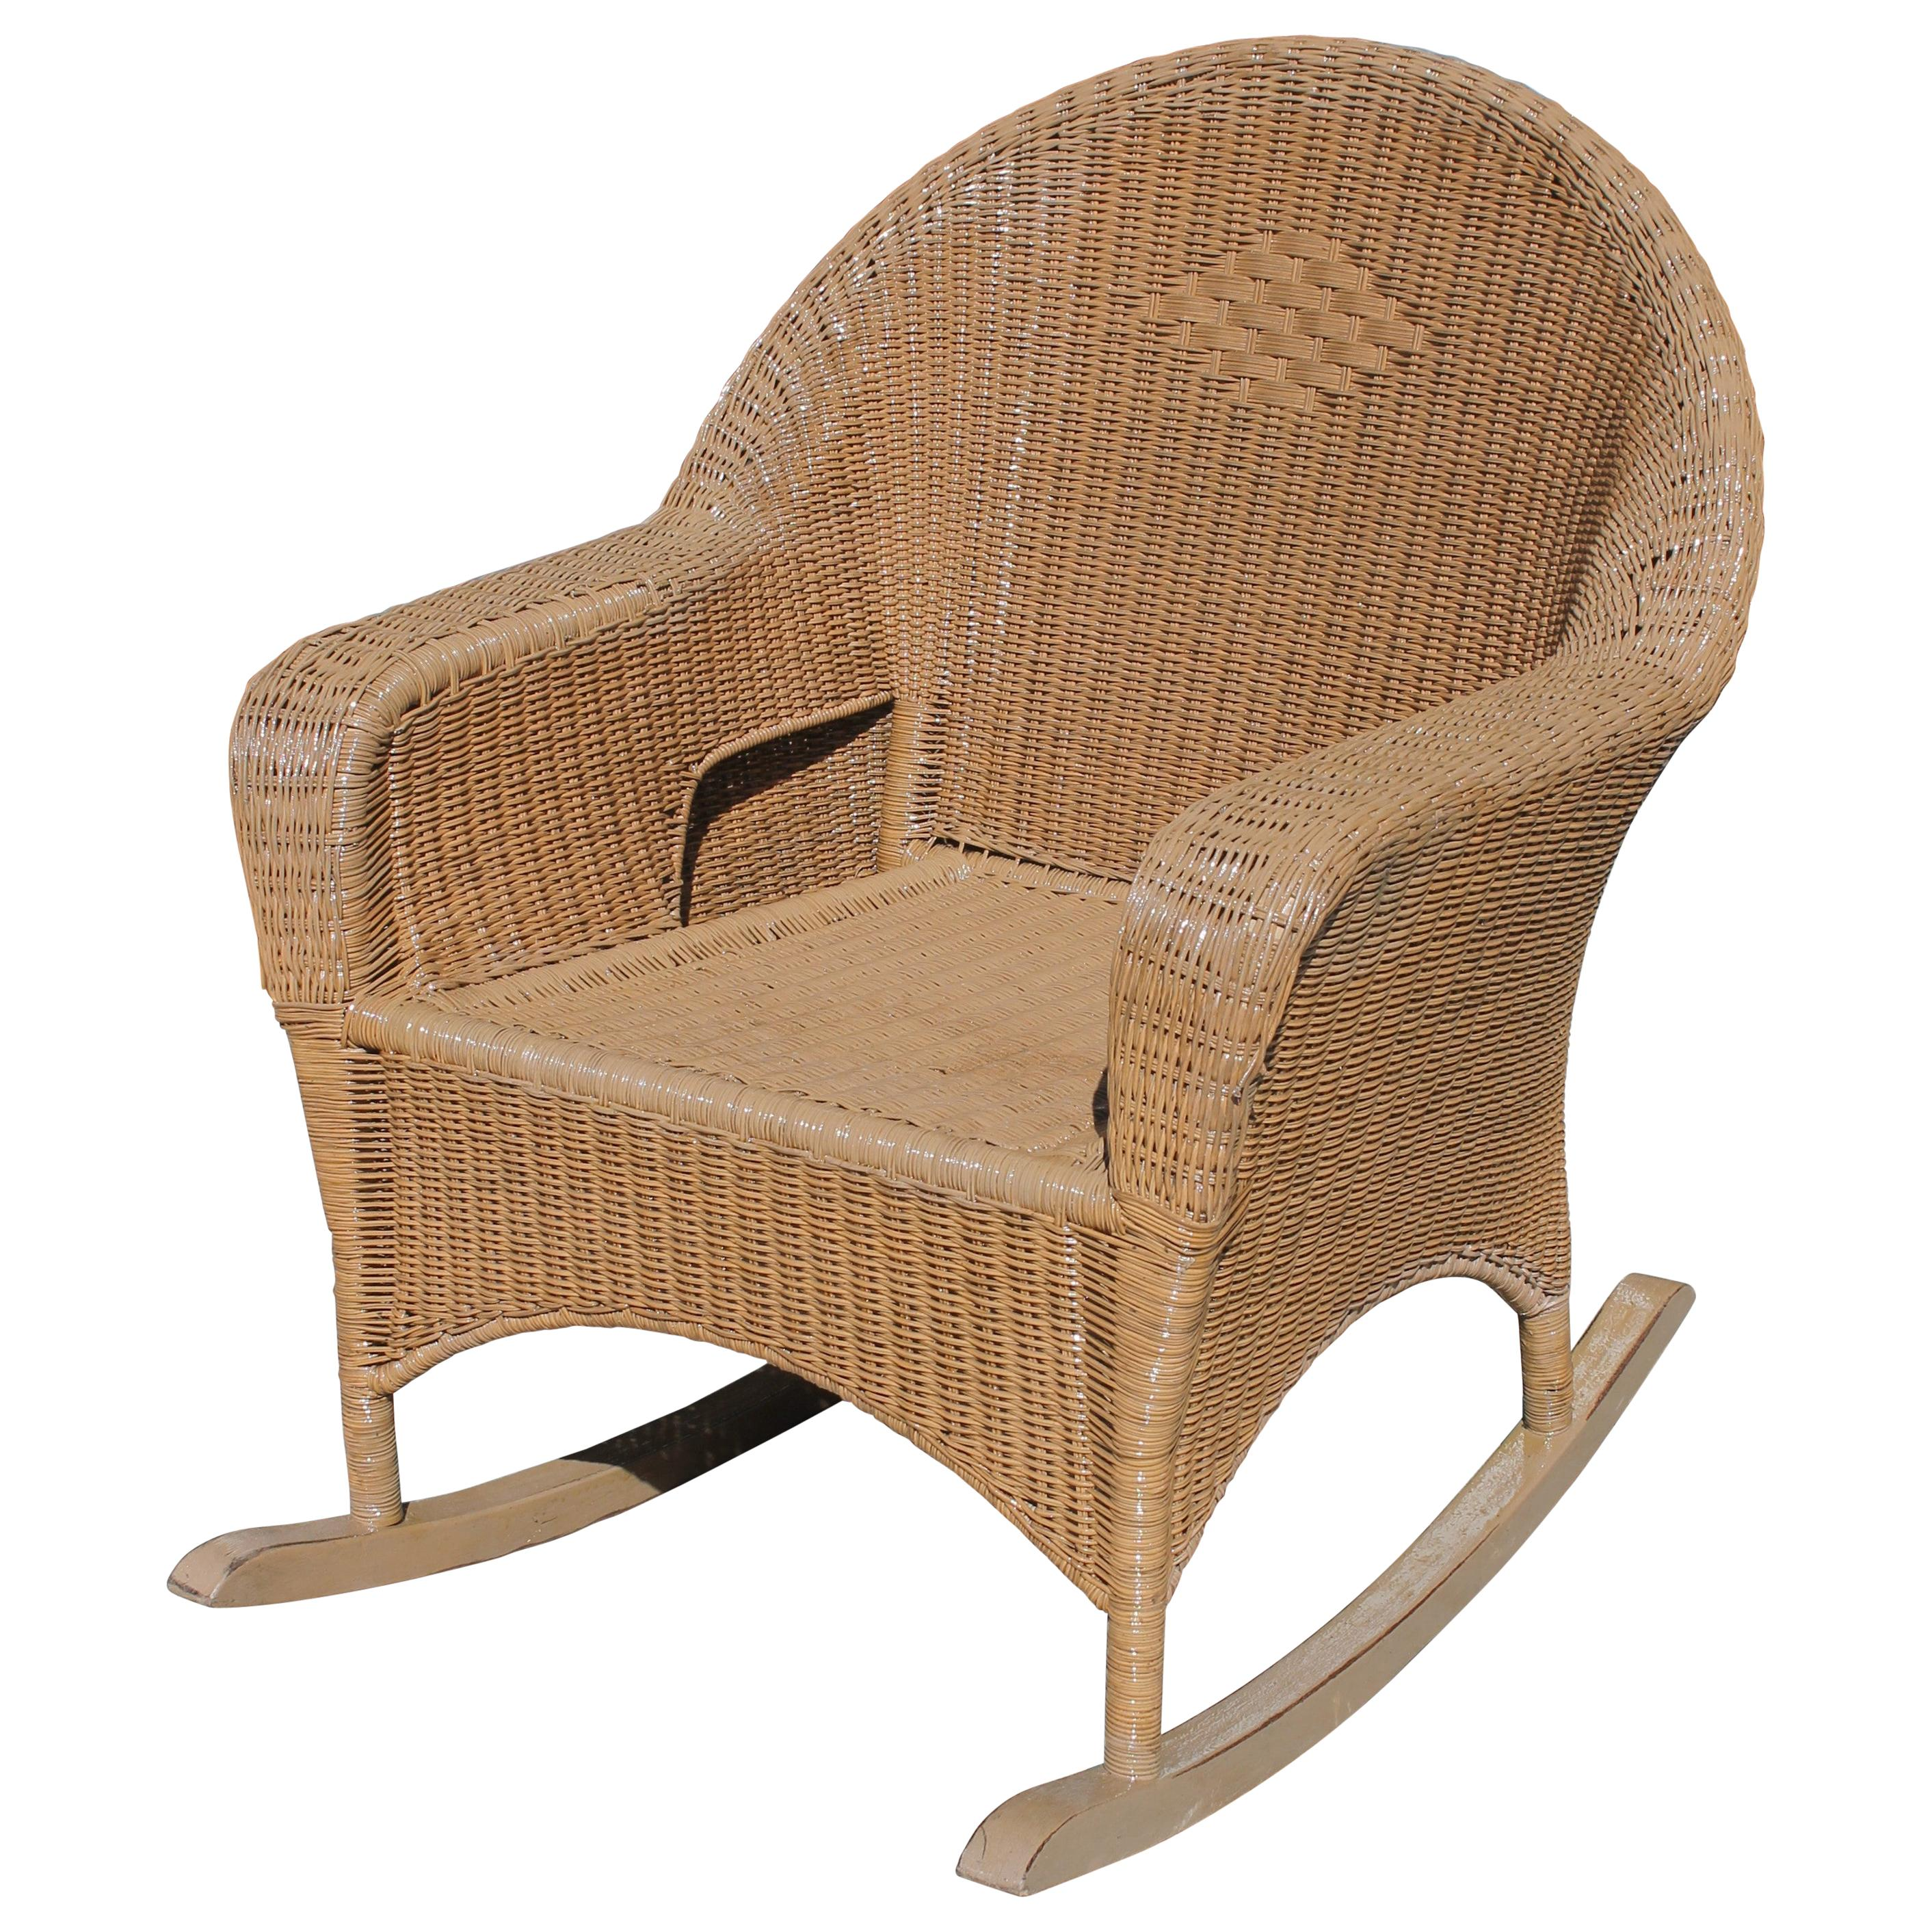 Awesome Antique And Vintage Rocking Chairs 1 009 For Sale At 1Stdibs Ibusinesslaw Wood Chair Design Ideas Ibusinesslaworg